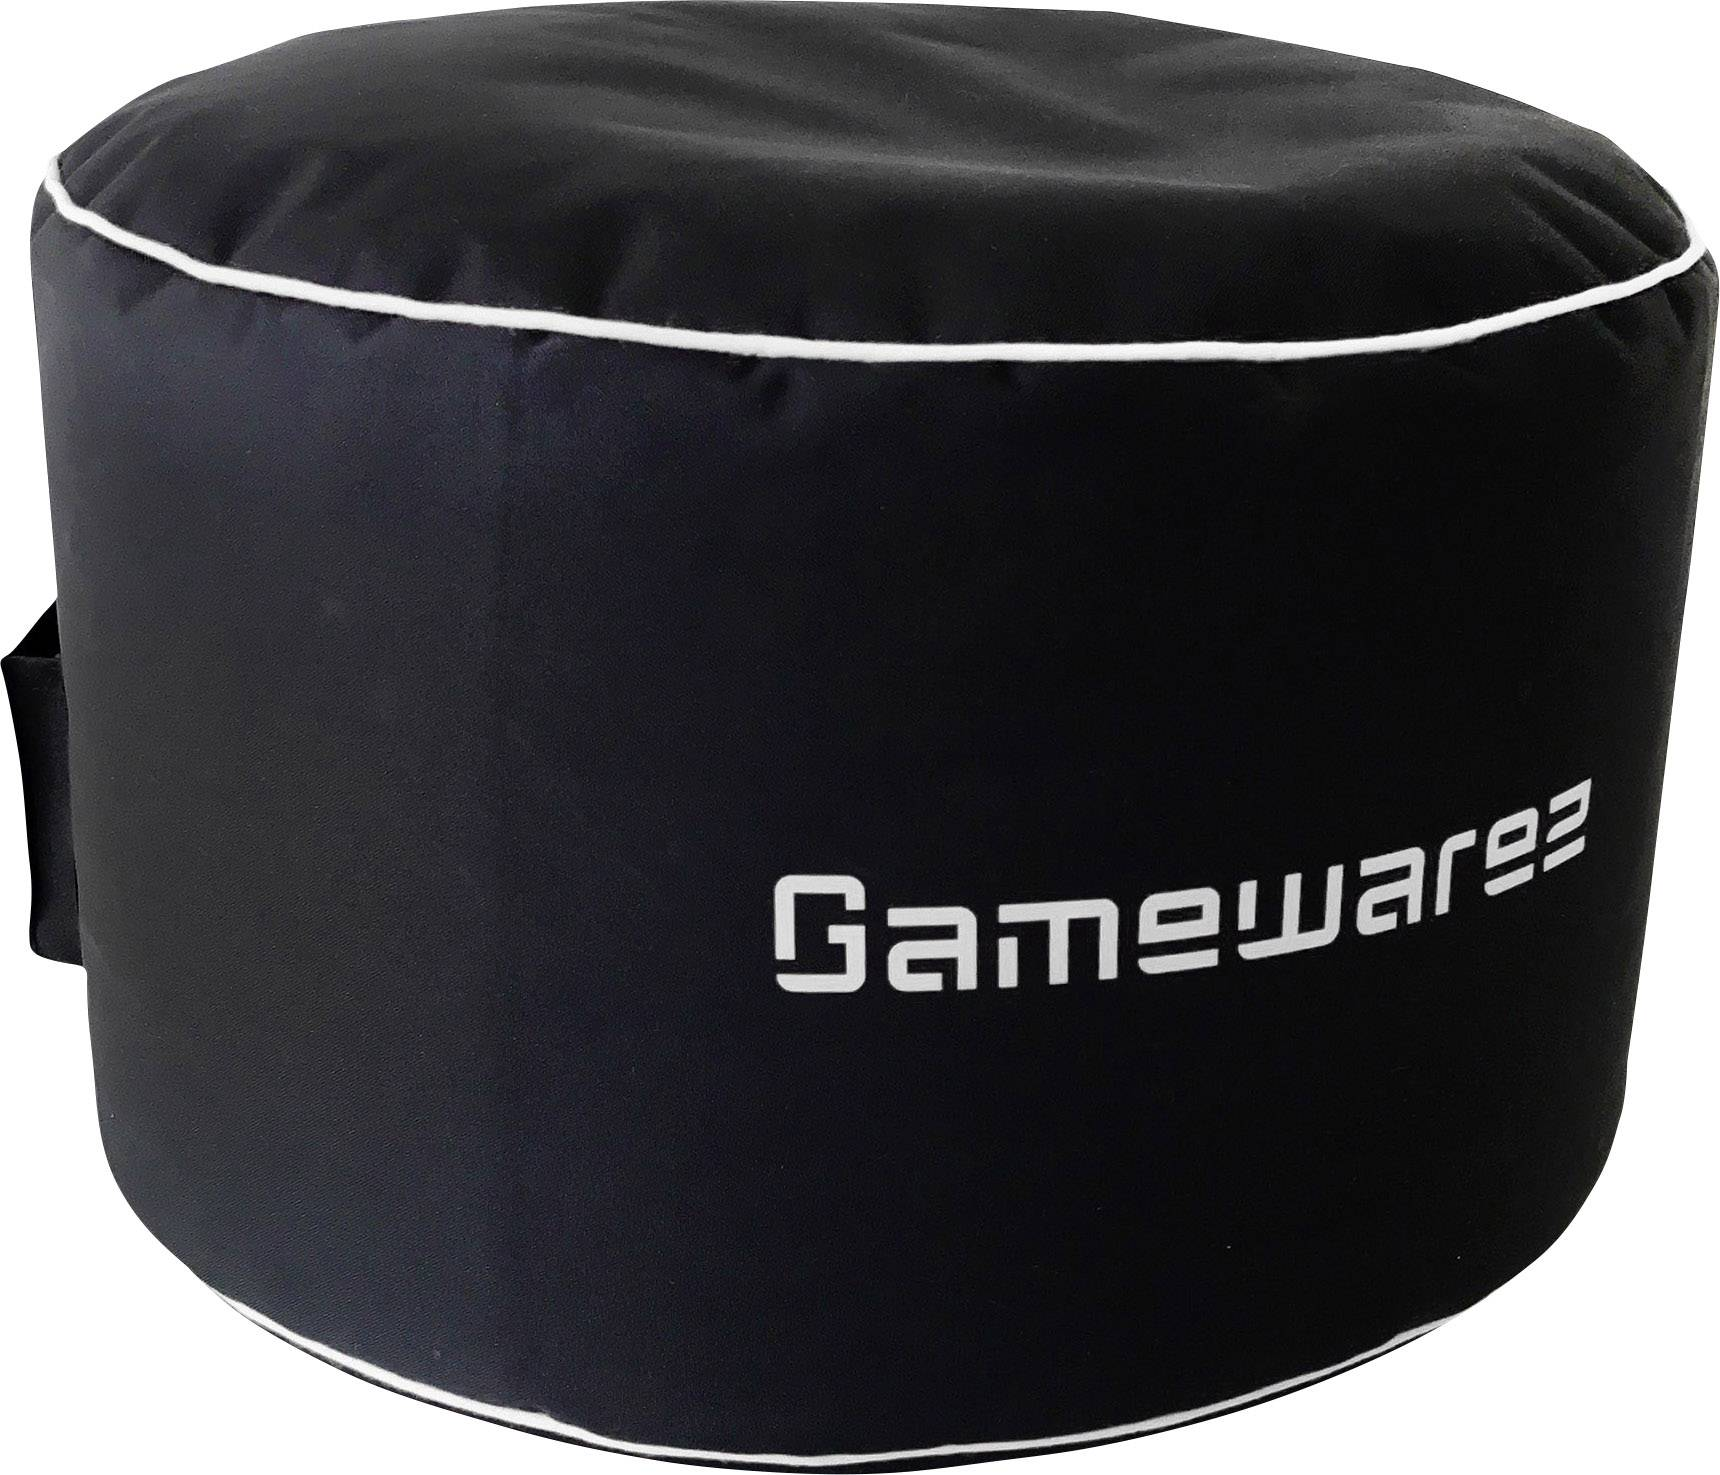 Hocker Grau Gamewarez Gaming Hocker Cosmic Station Schwarz Grau